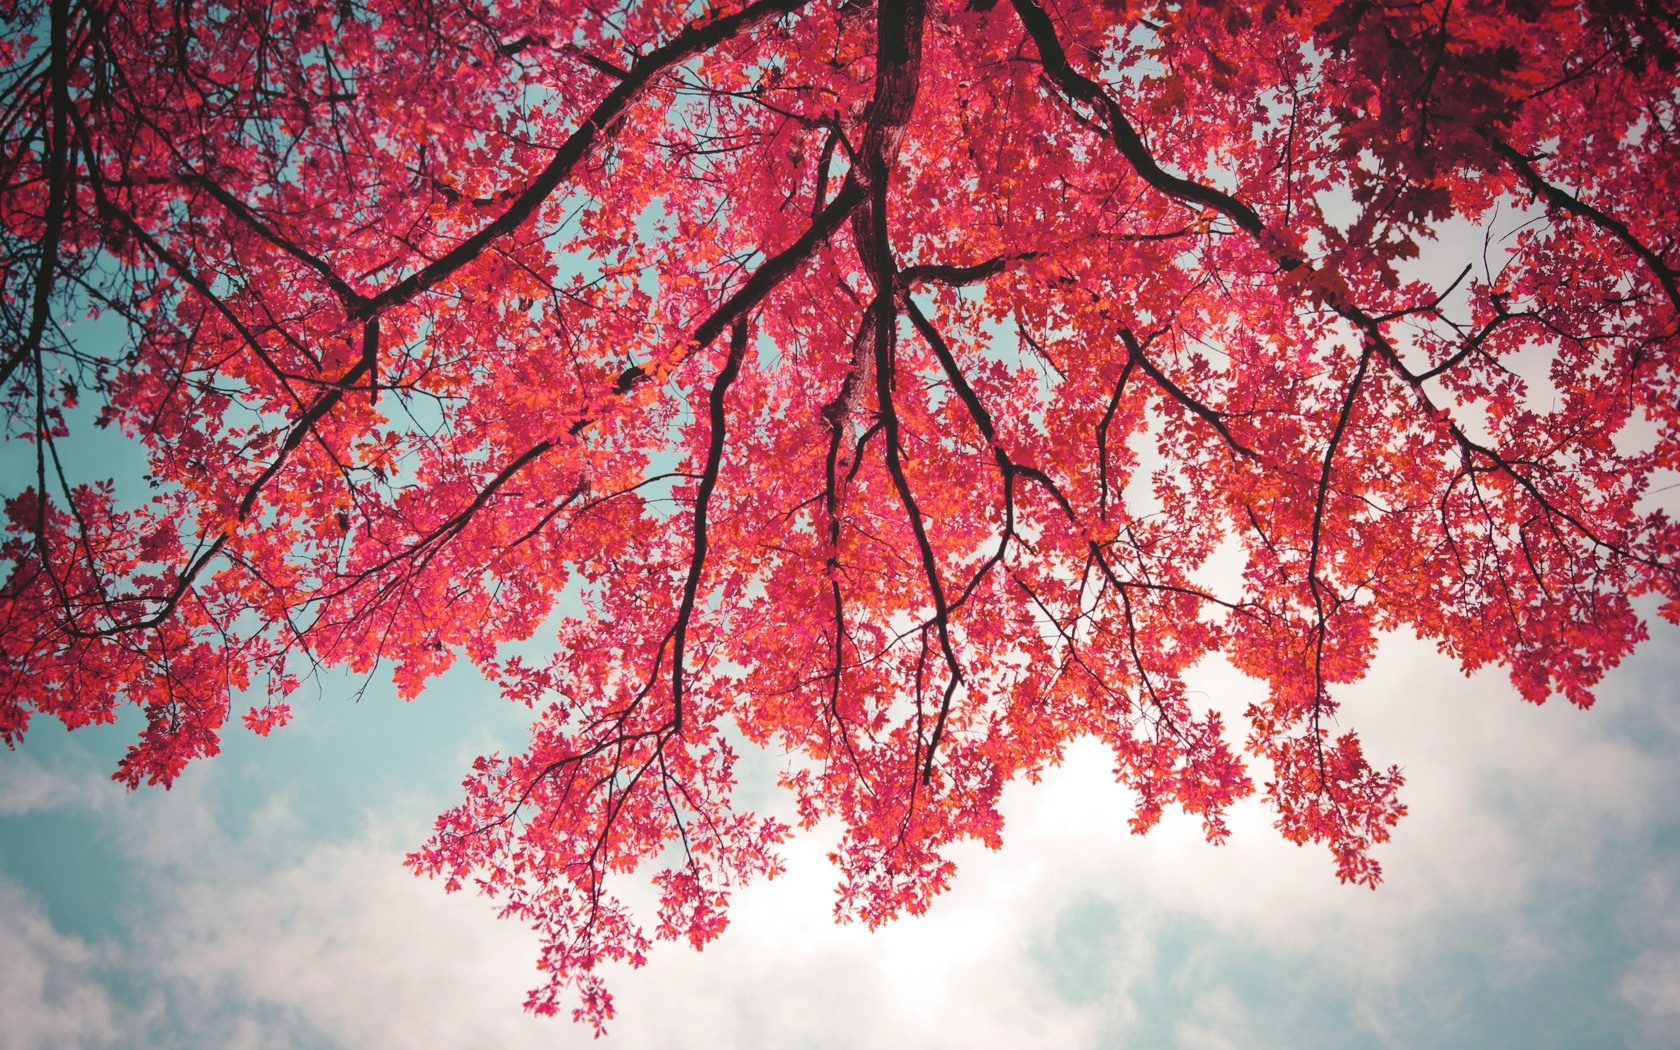 Pink Leaves In Tree Branch   1680 x 1050   Download   CloseTree Branch With Leaves